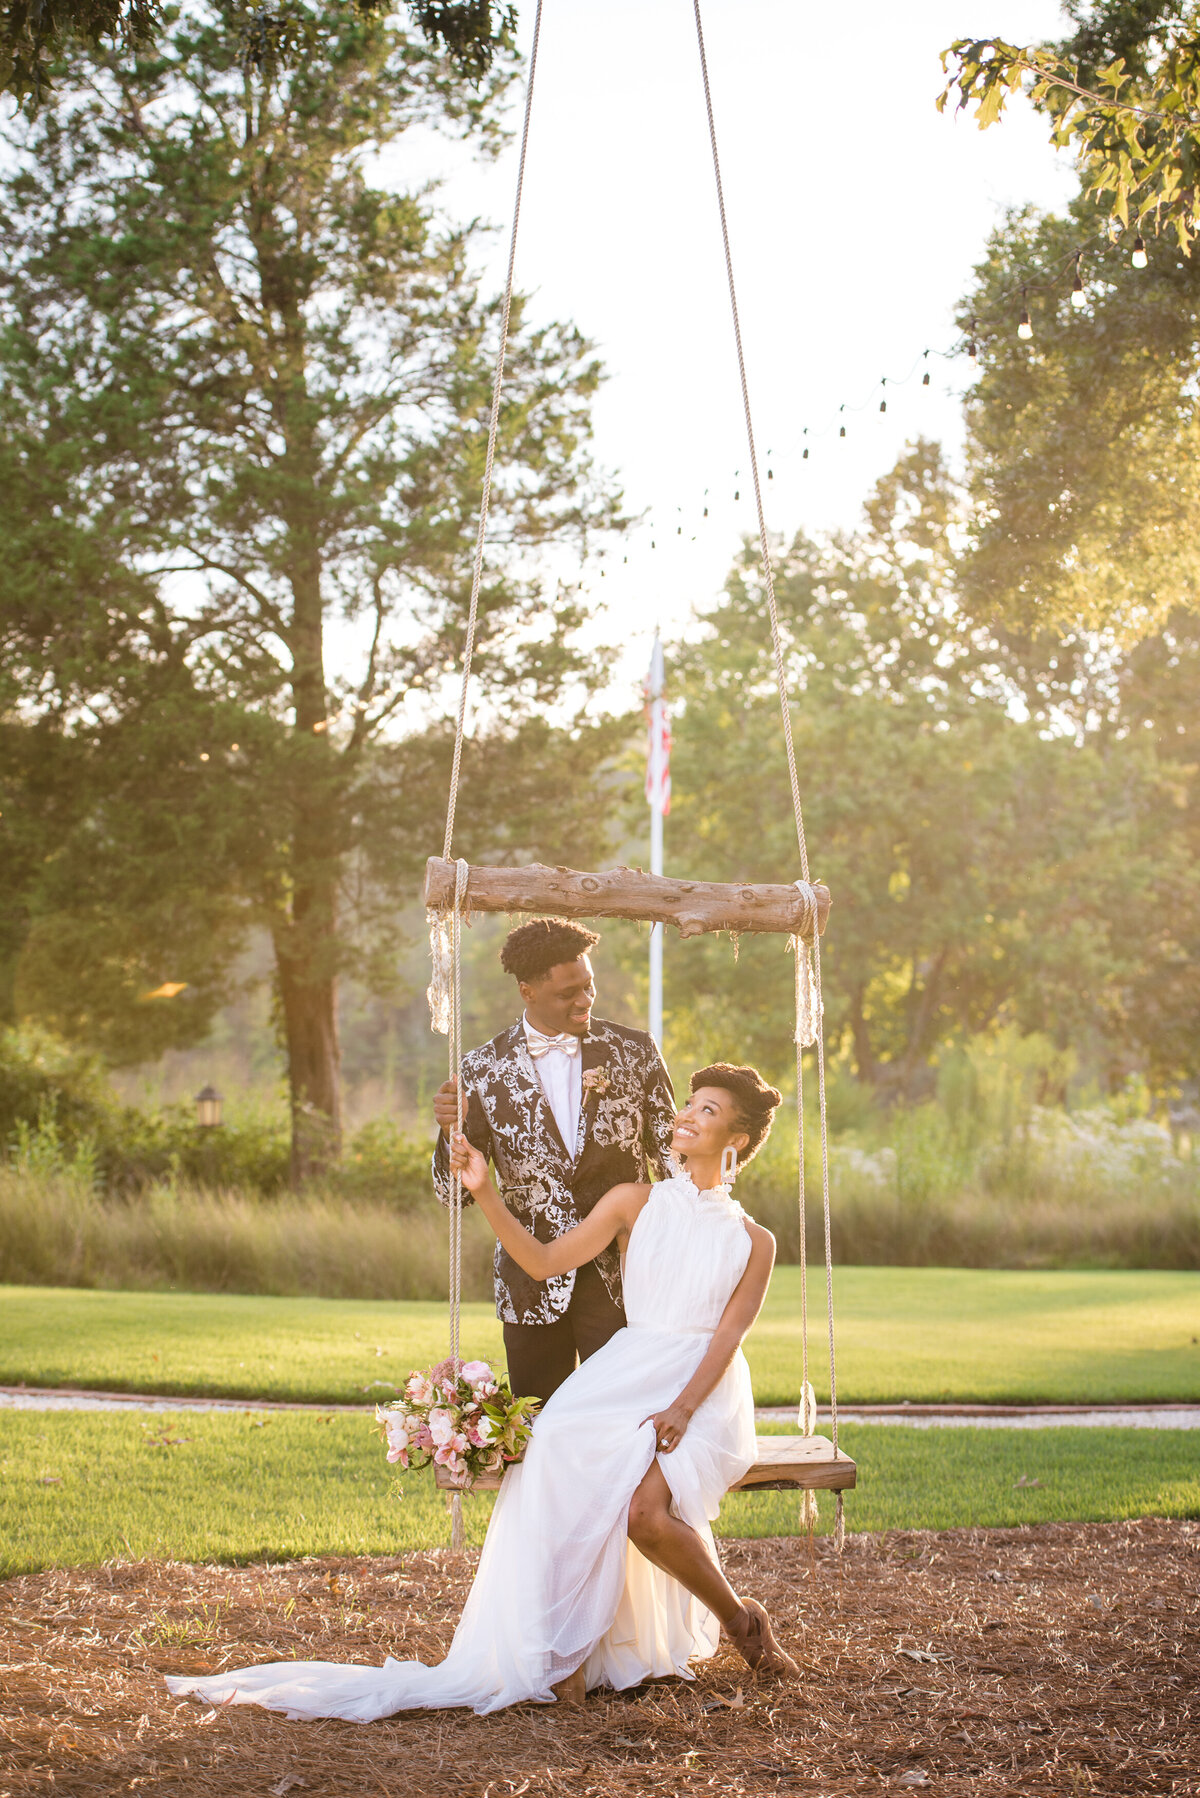 African American couple at swing